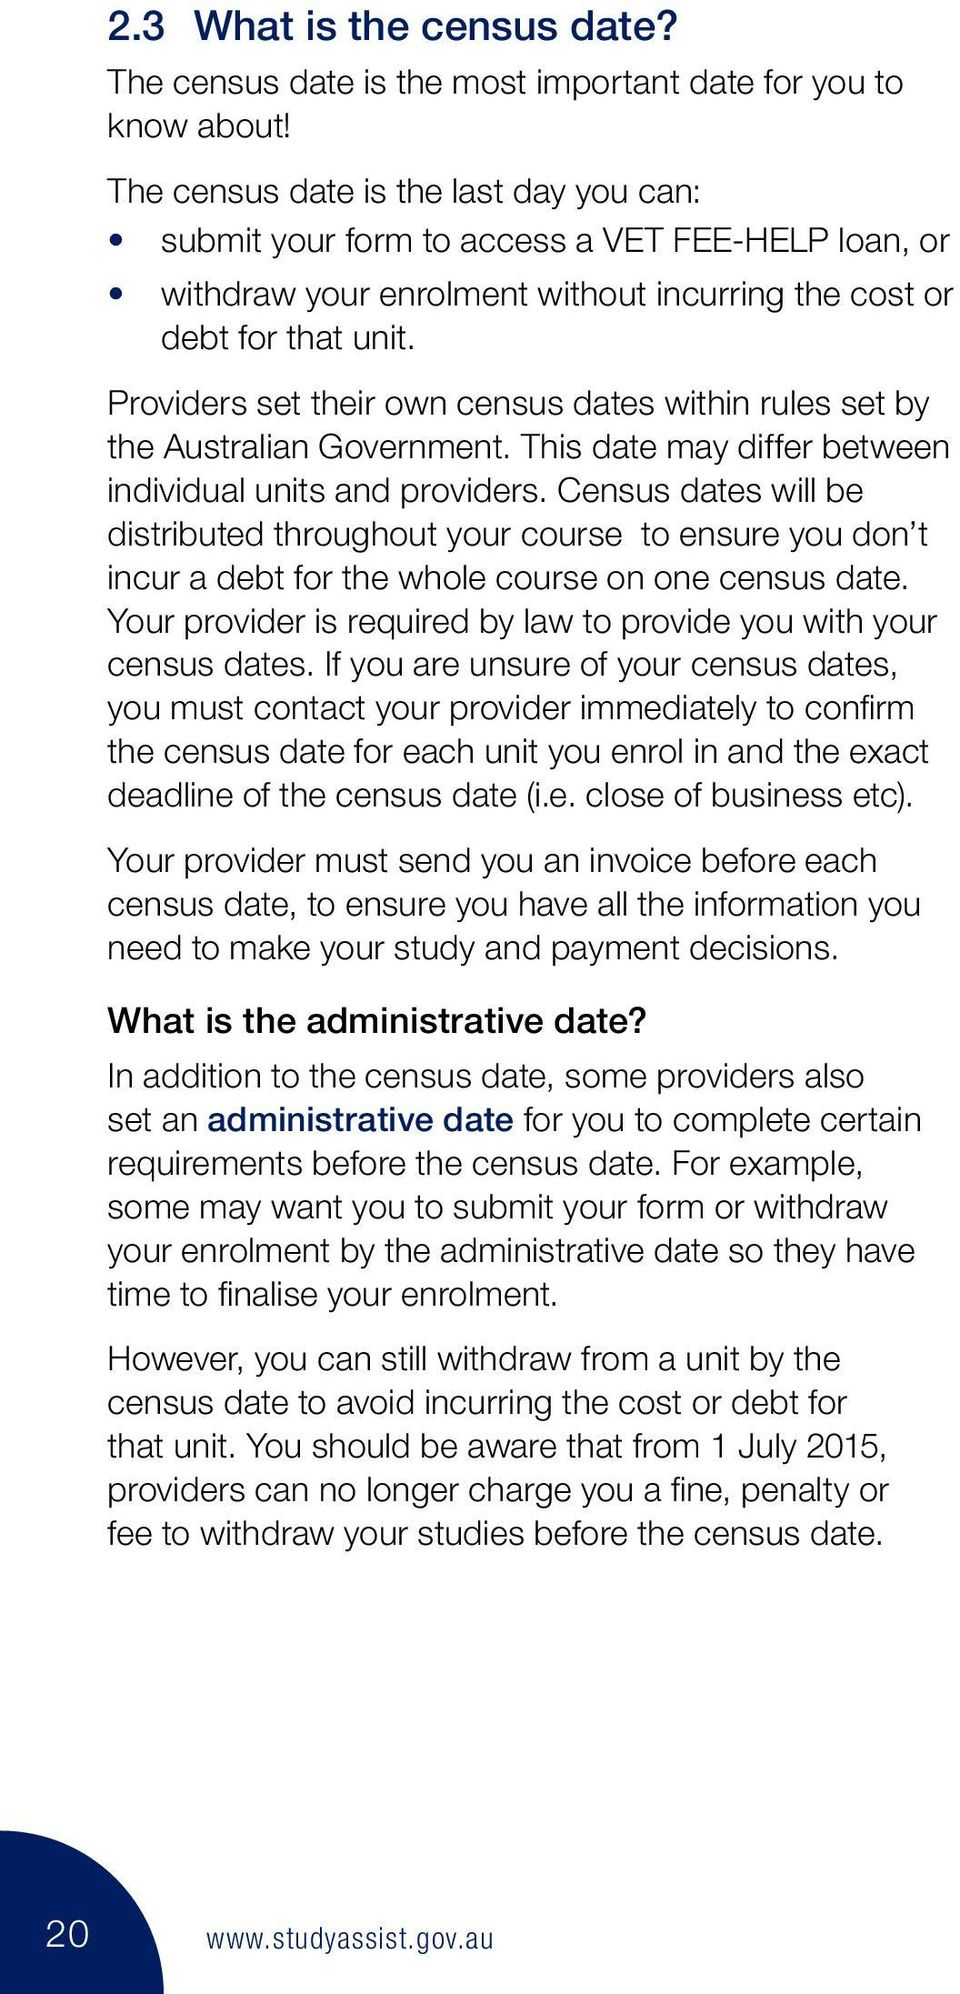 Providers set their own census dates within rules set by the Australian Government. This date may differ between individual units and providers.